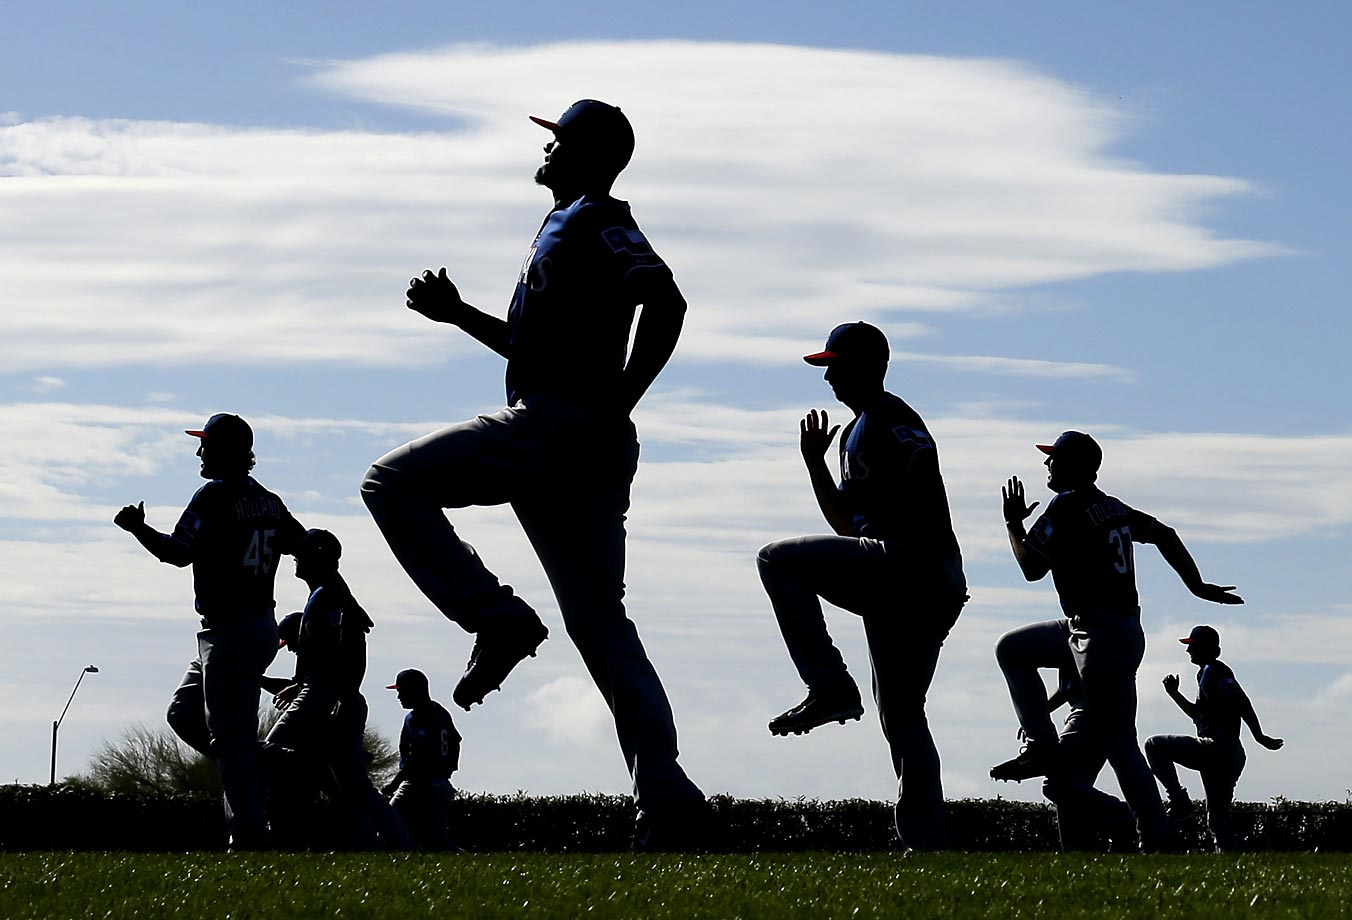 Texas Rangers players during spring training workouts.